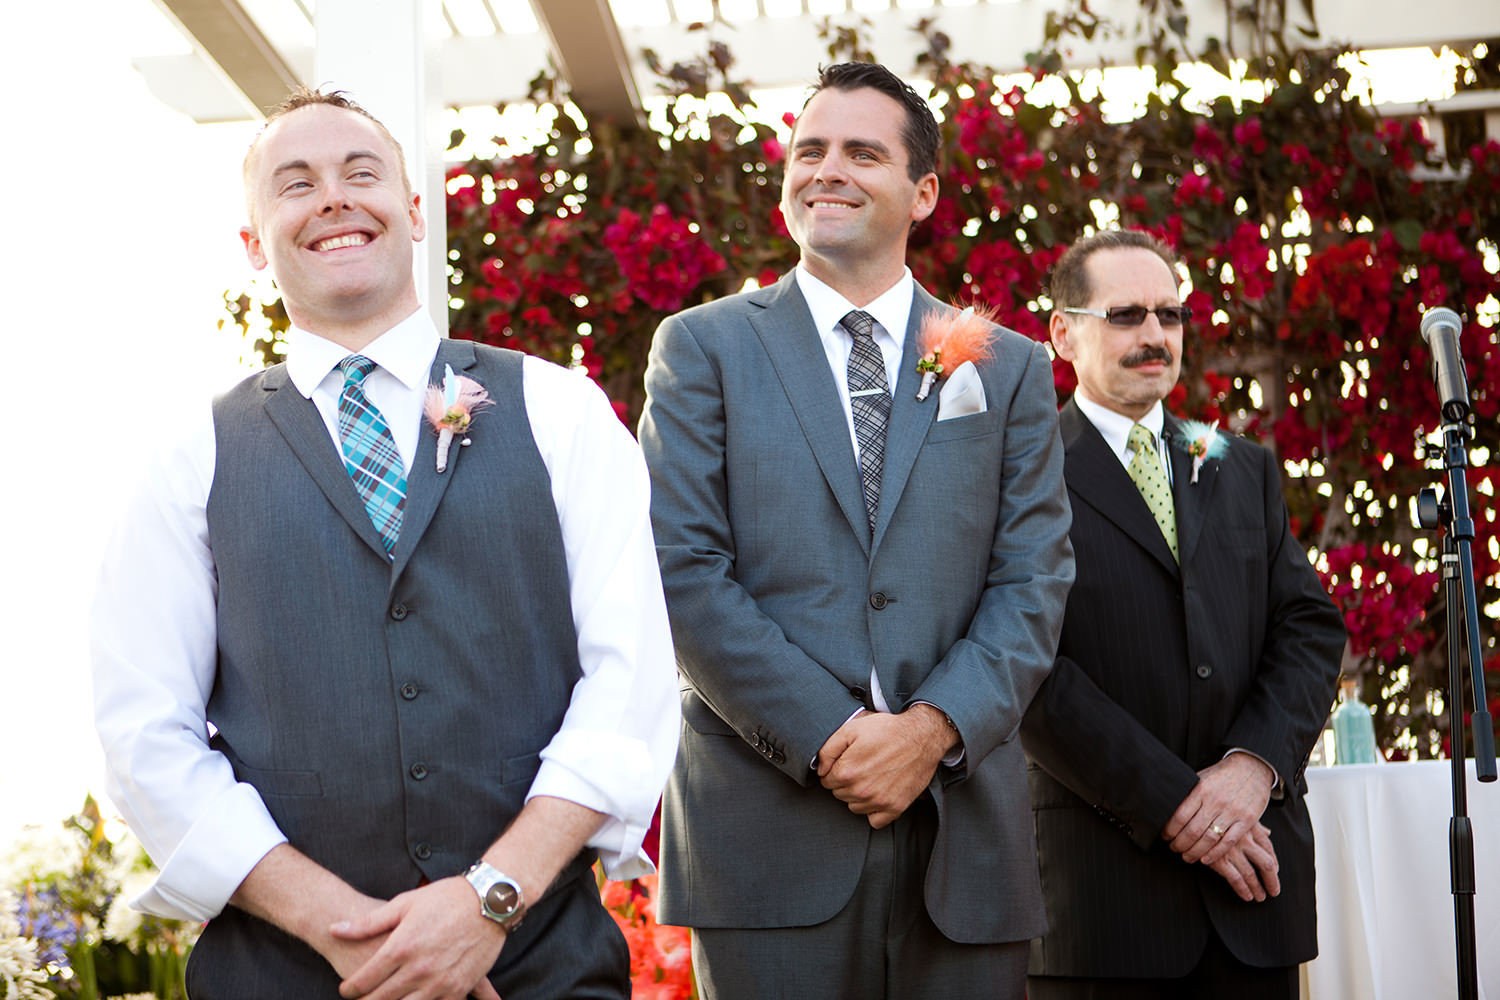 groom smiling while bride walks down the aisle